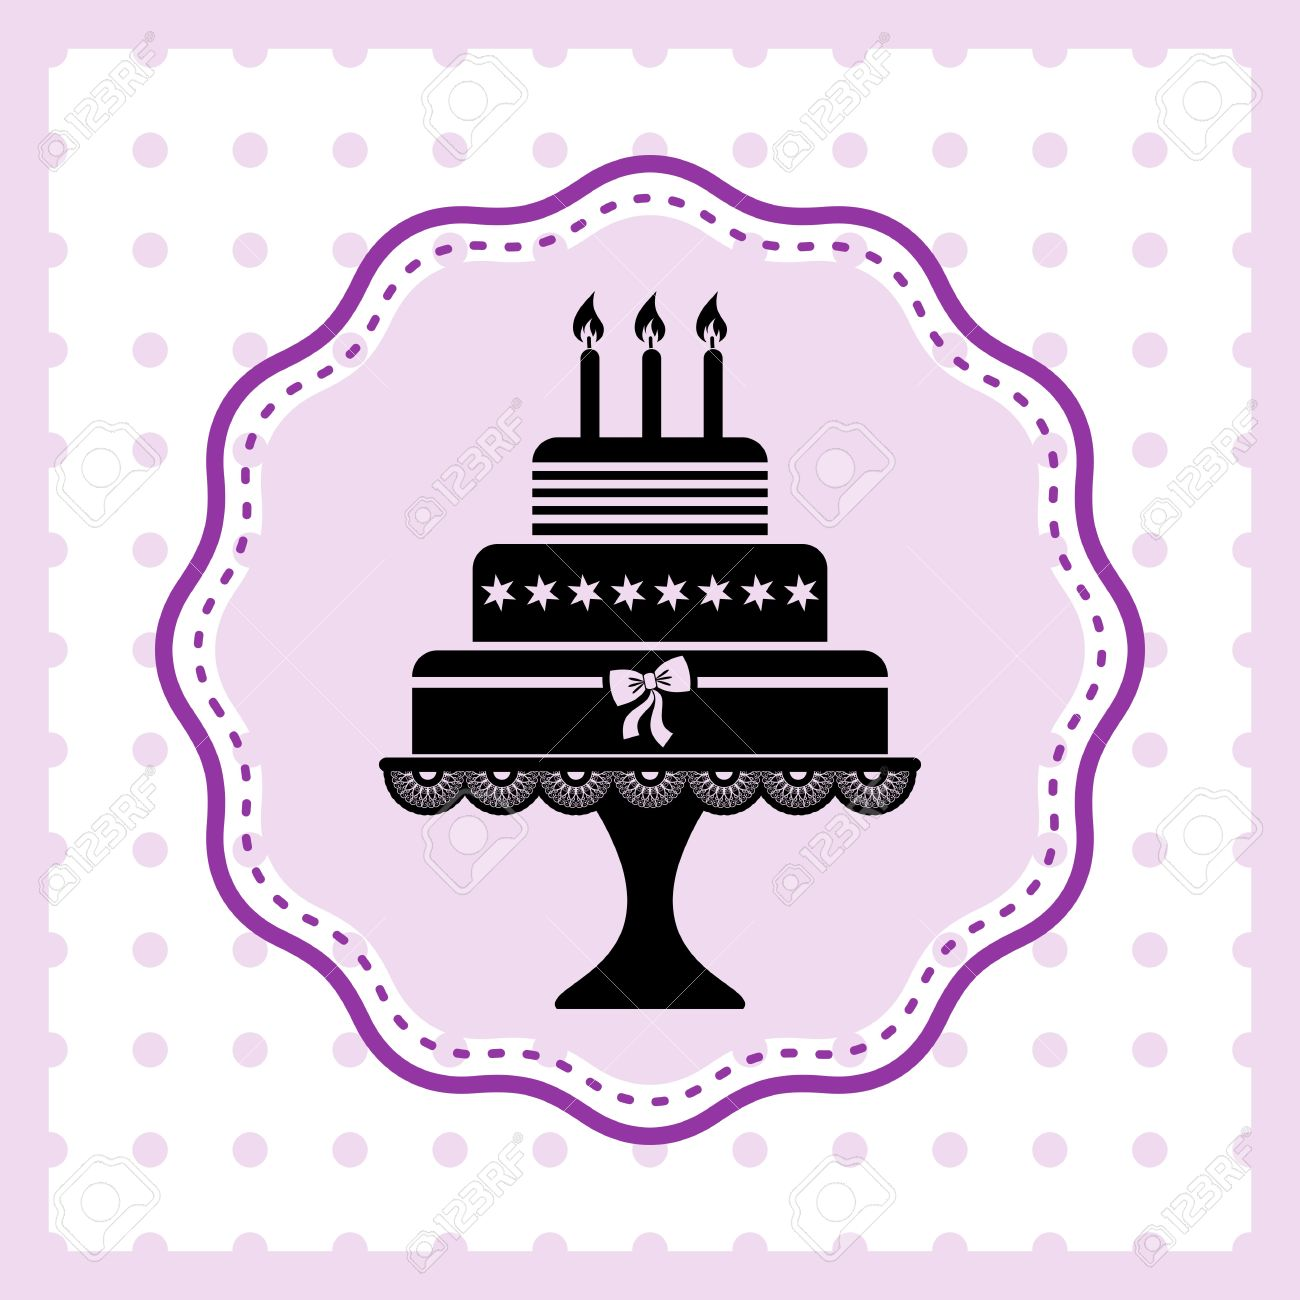 Beautiful Vintage Happy Birthday Card With Cake Silhouette Royalty